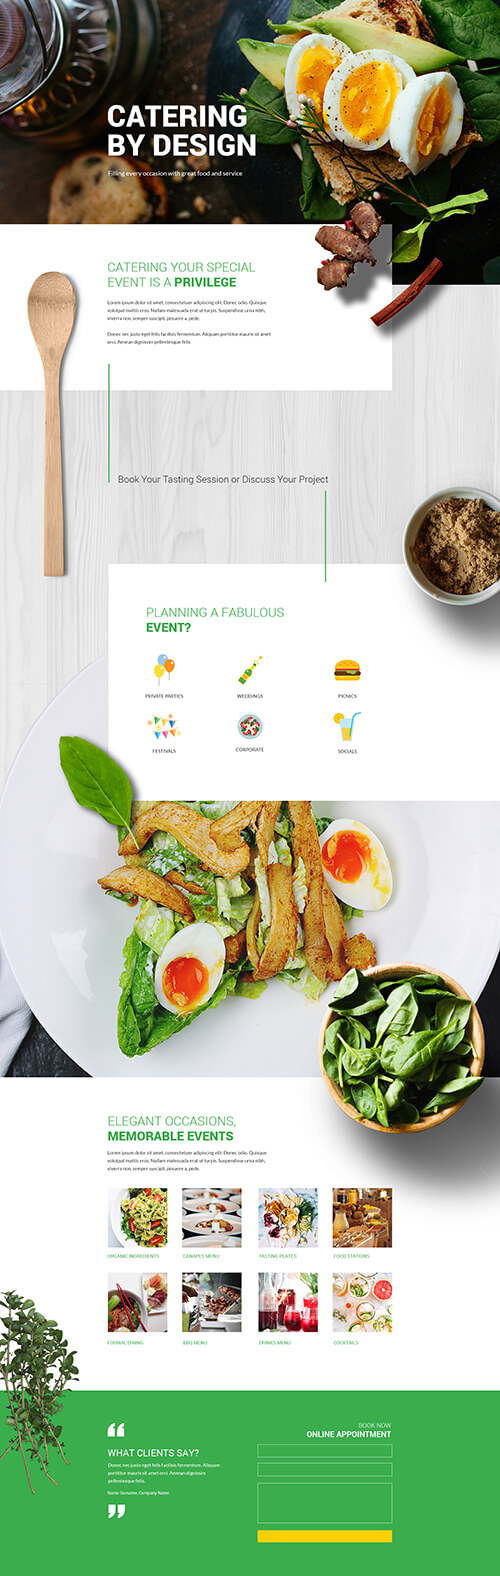 Divi layout for catering business